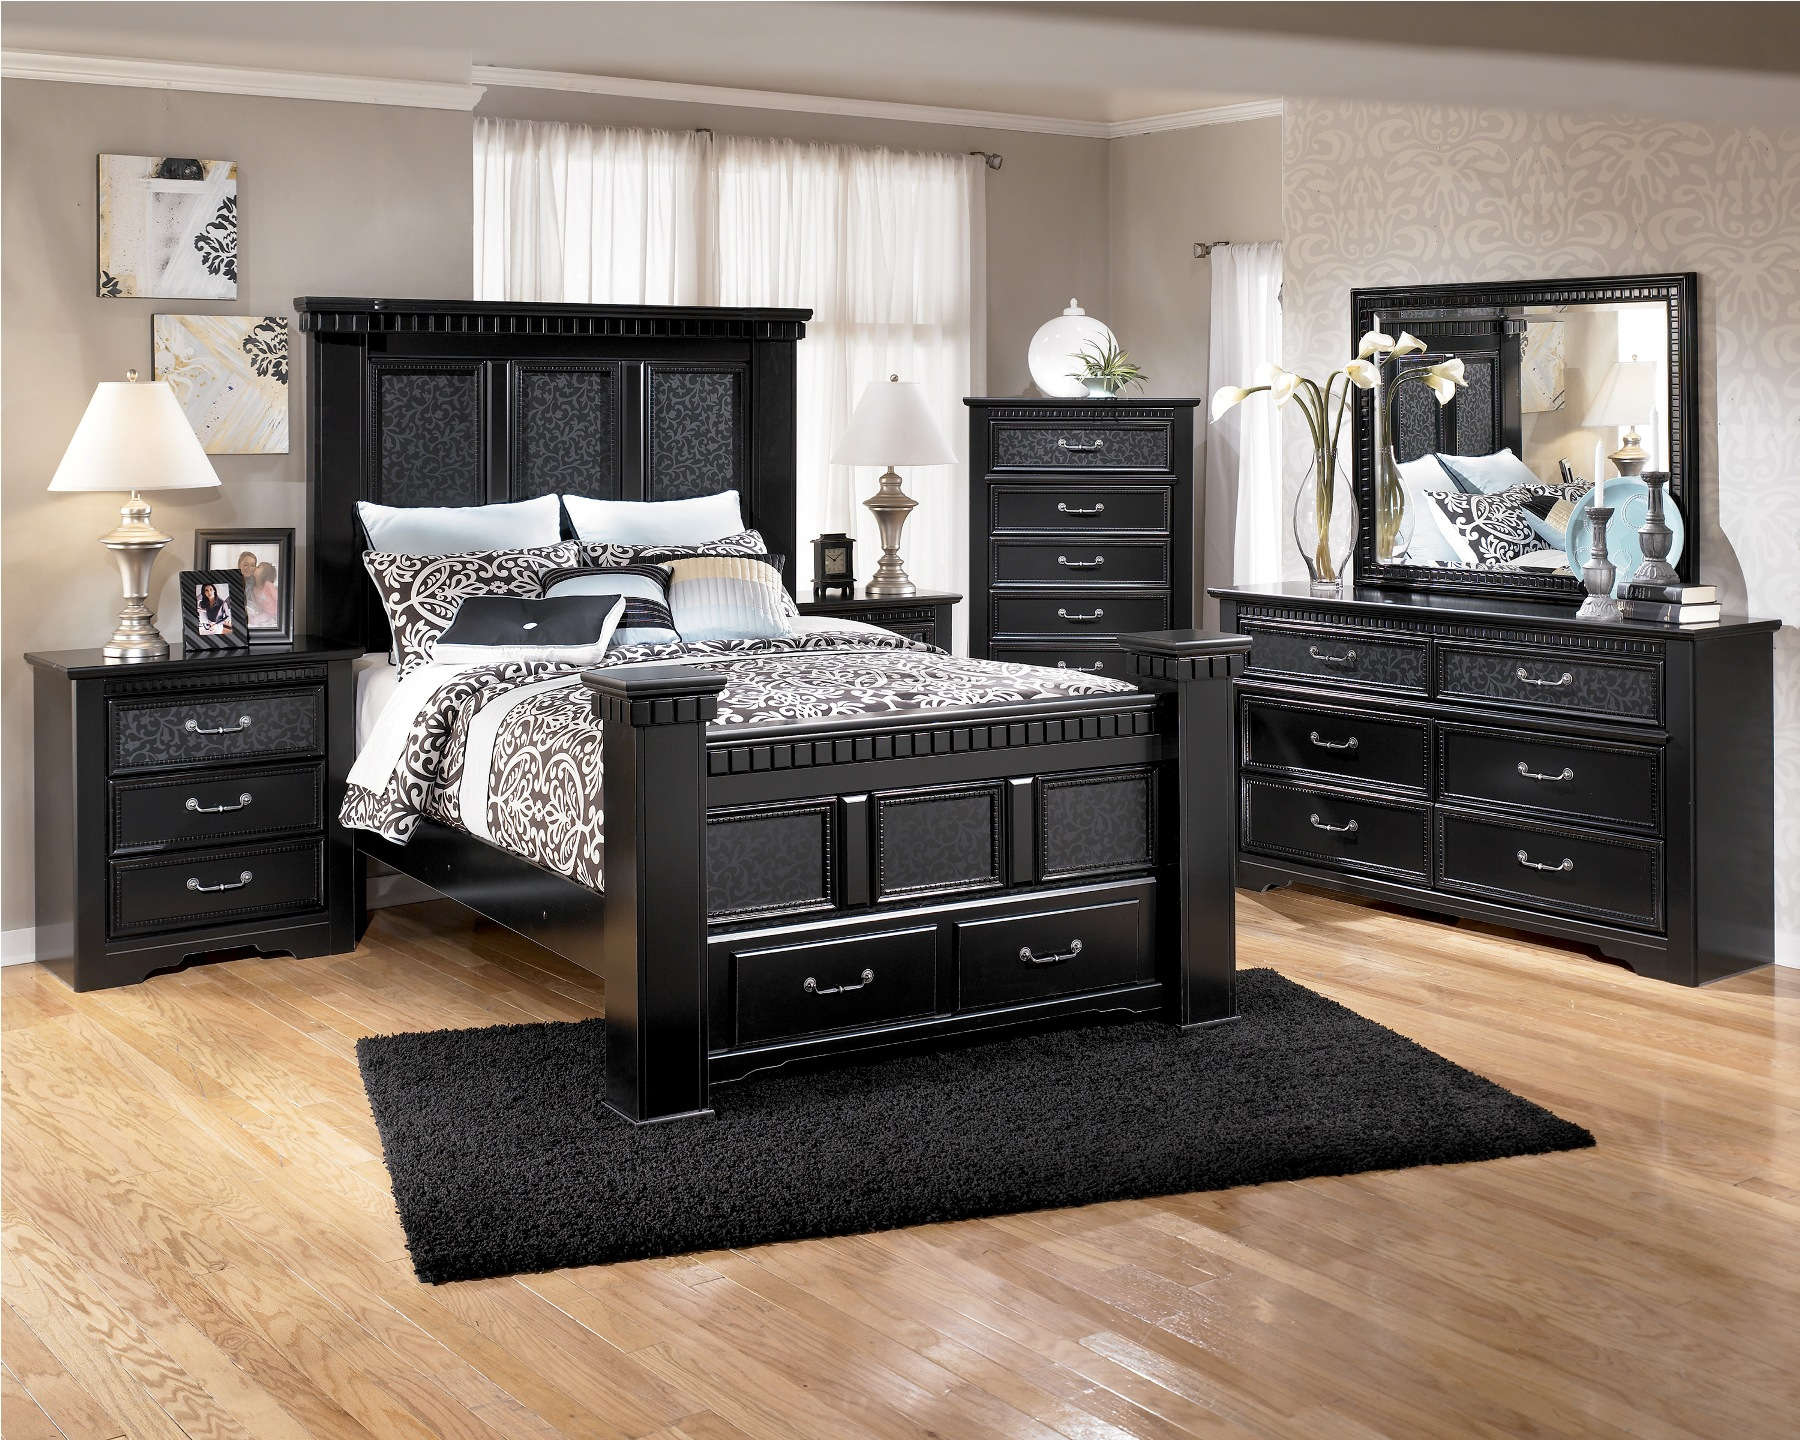 furniture-black-bedroom-set1